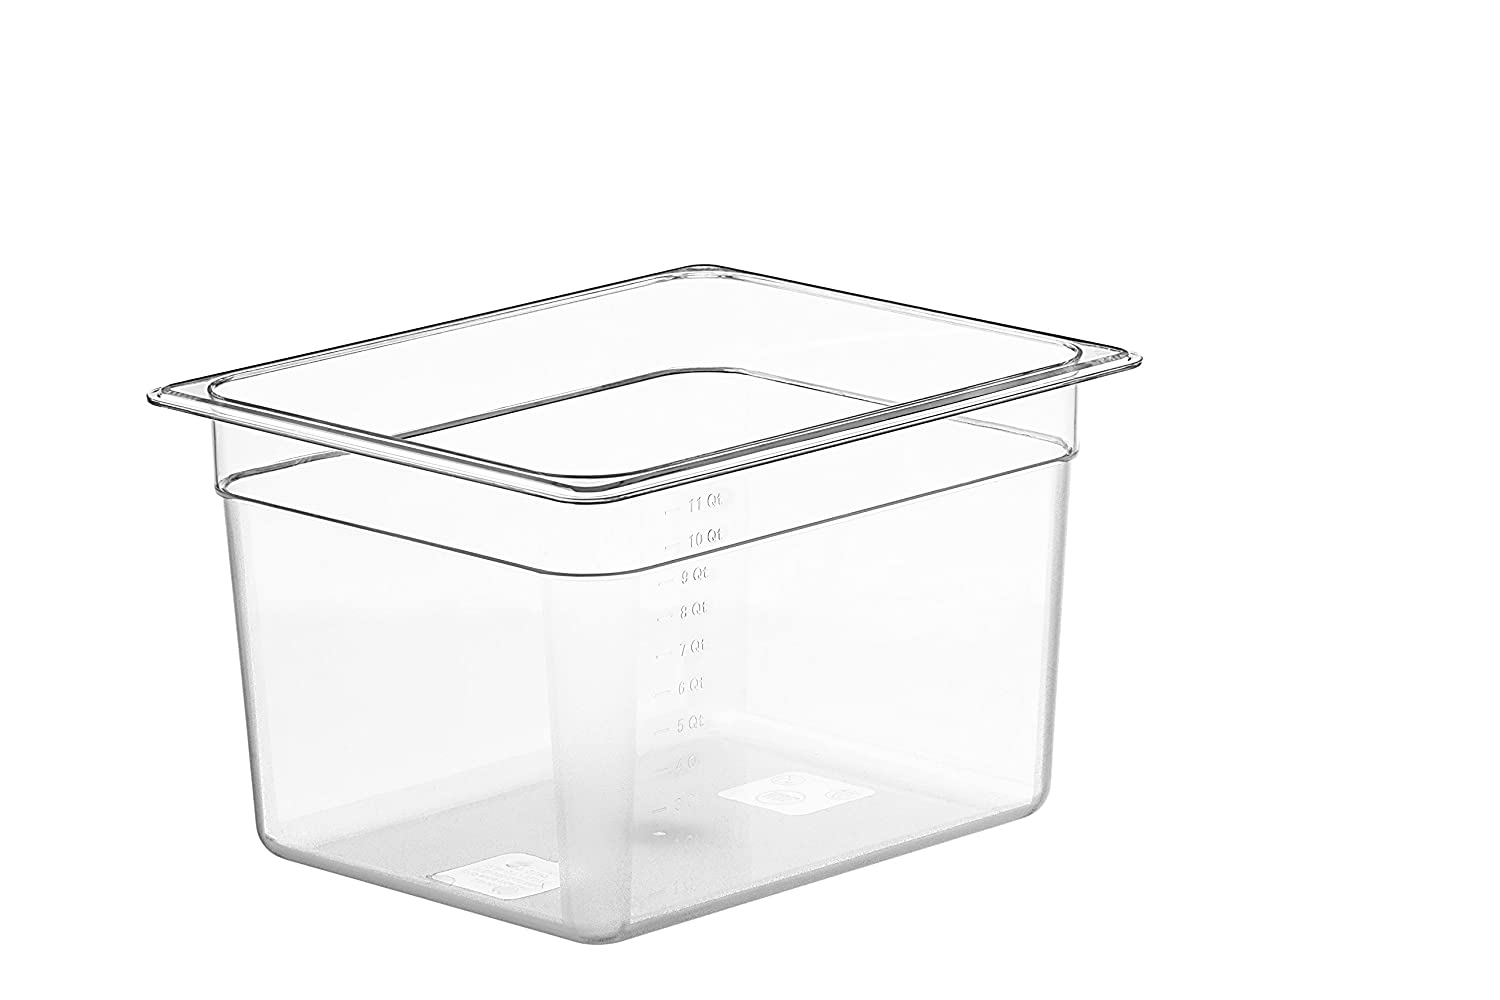 LIPAVI Sous Vide Container Model C10 3.0 Gallon (12 Quarts) 12.7 x 10.3 Inch - Matching L10 rack and tailored lids for Joule, Anova and more sold separately